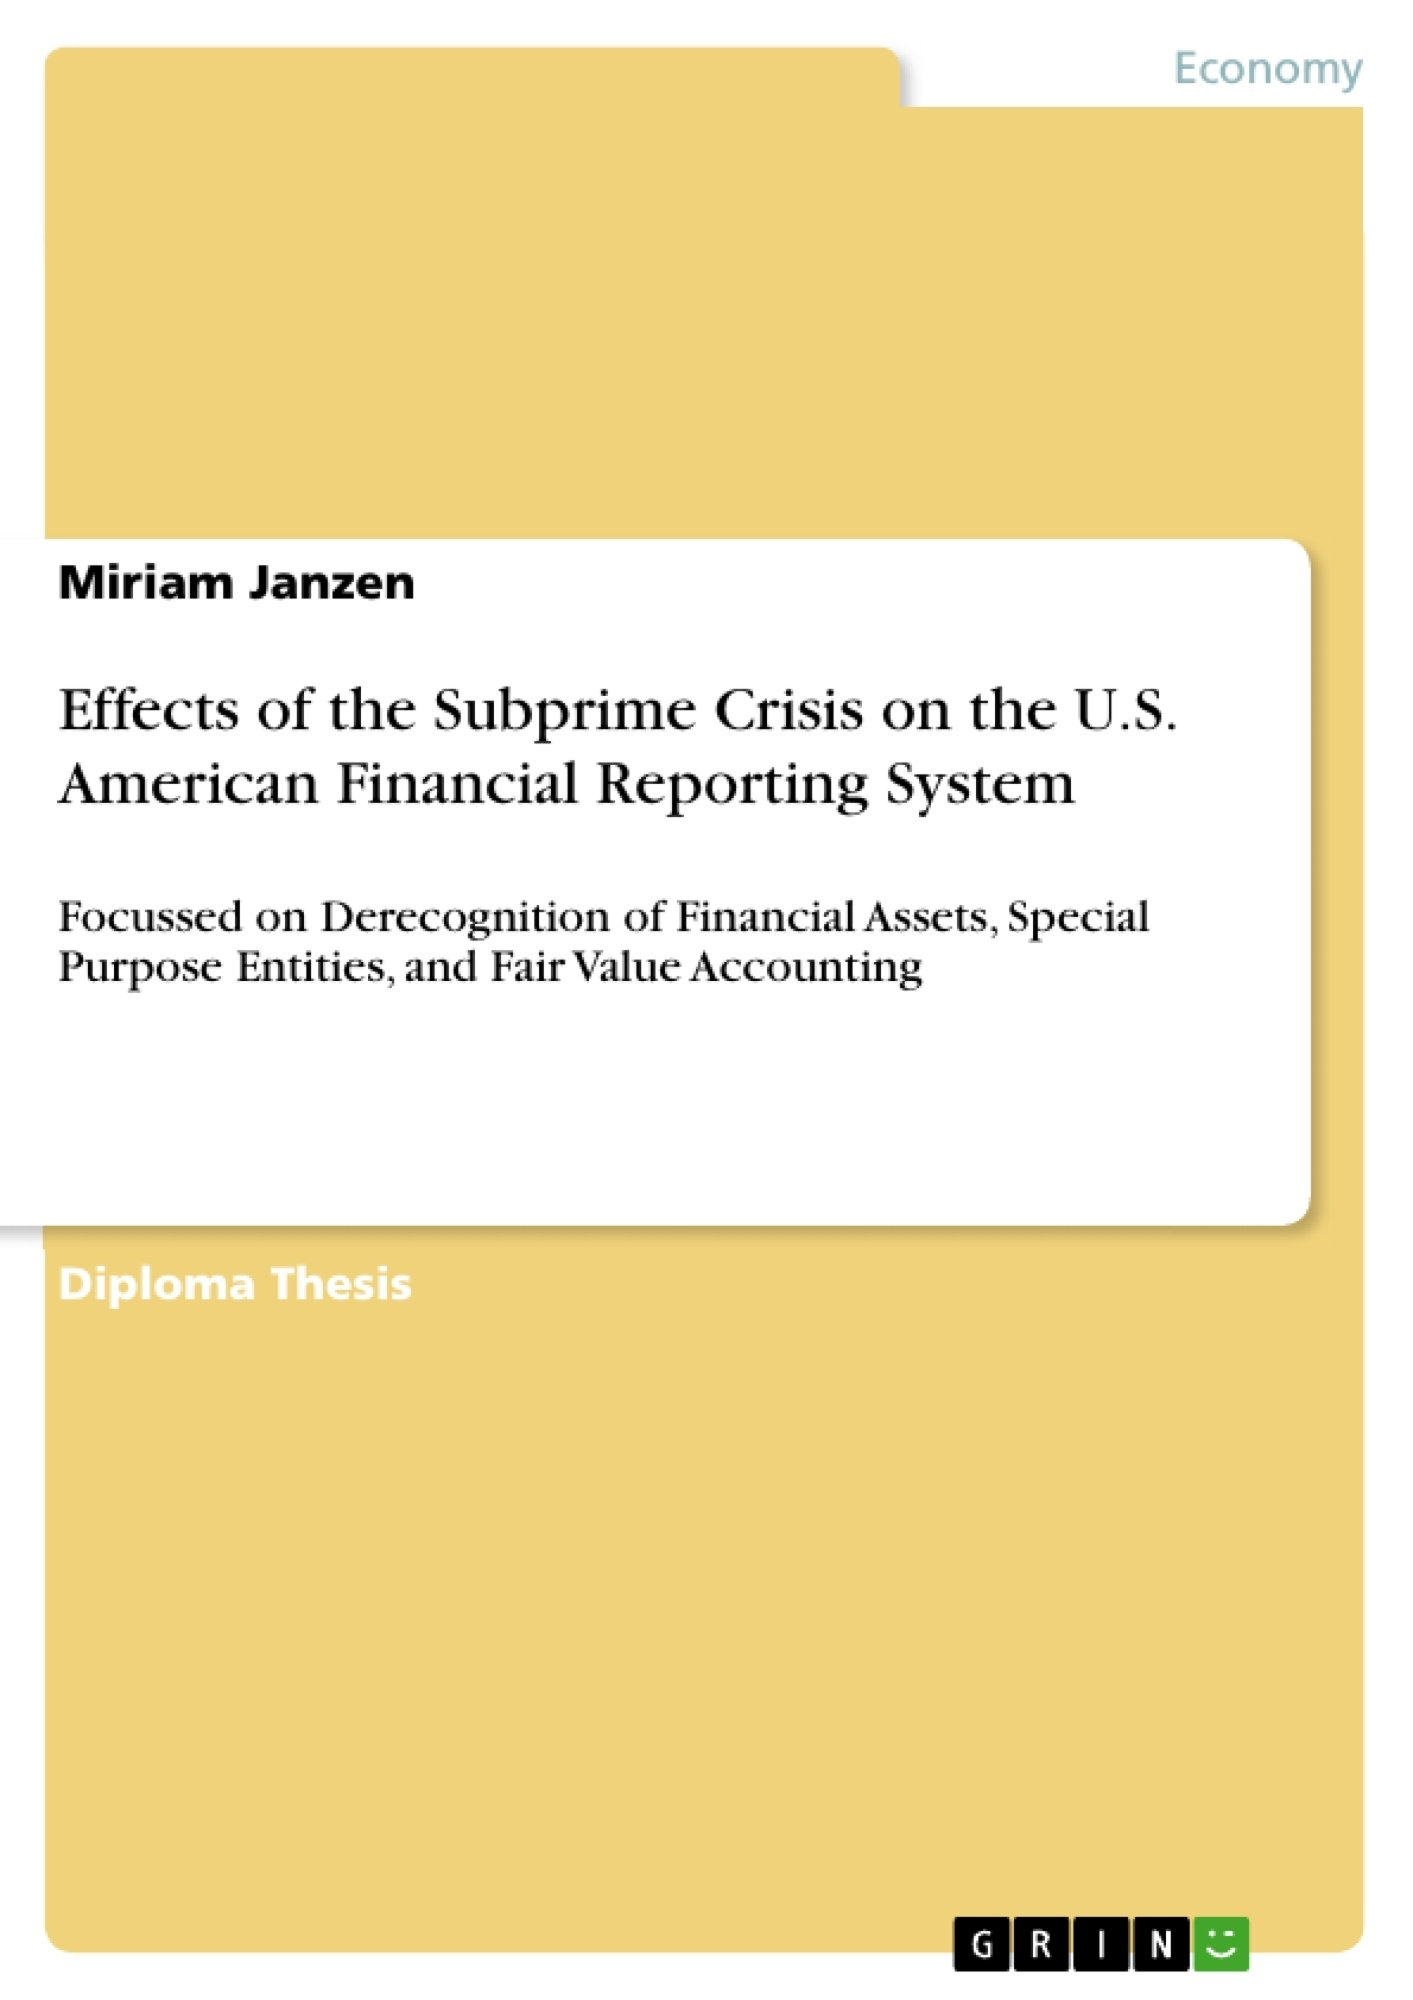 Title: Effects of the Subprime Crisis on the U.S. American Financial Reporting System